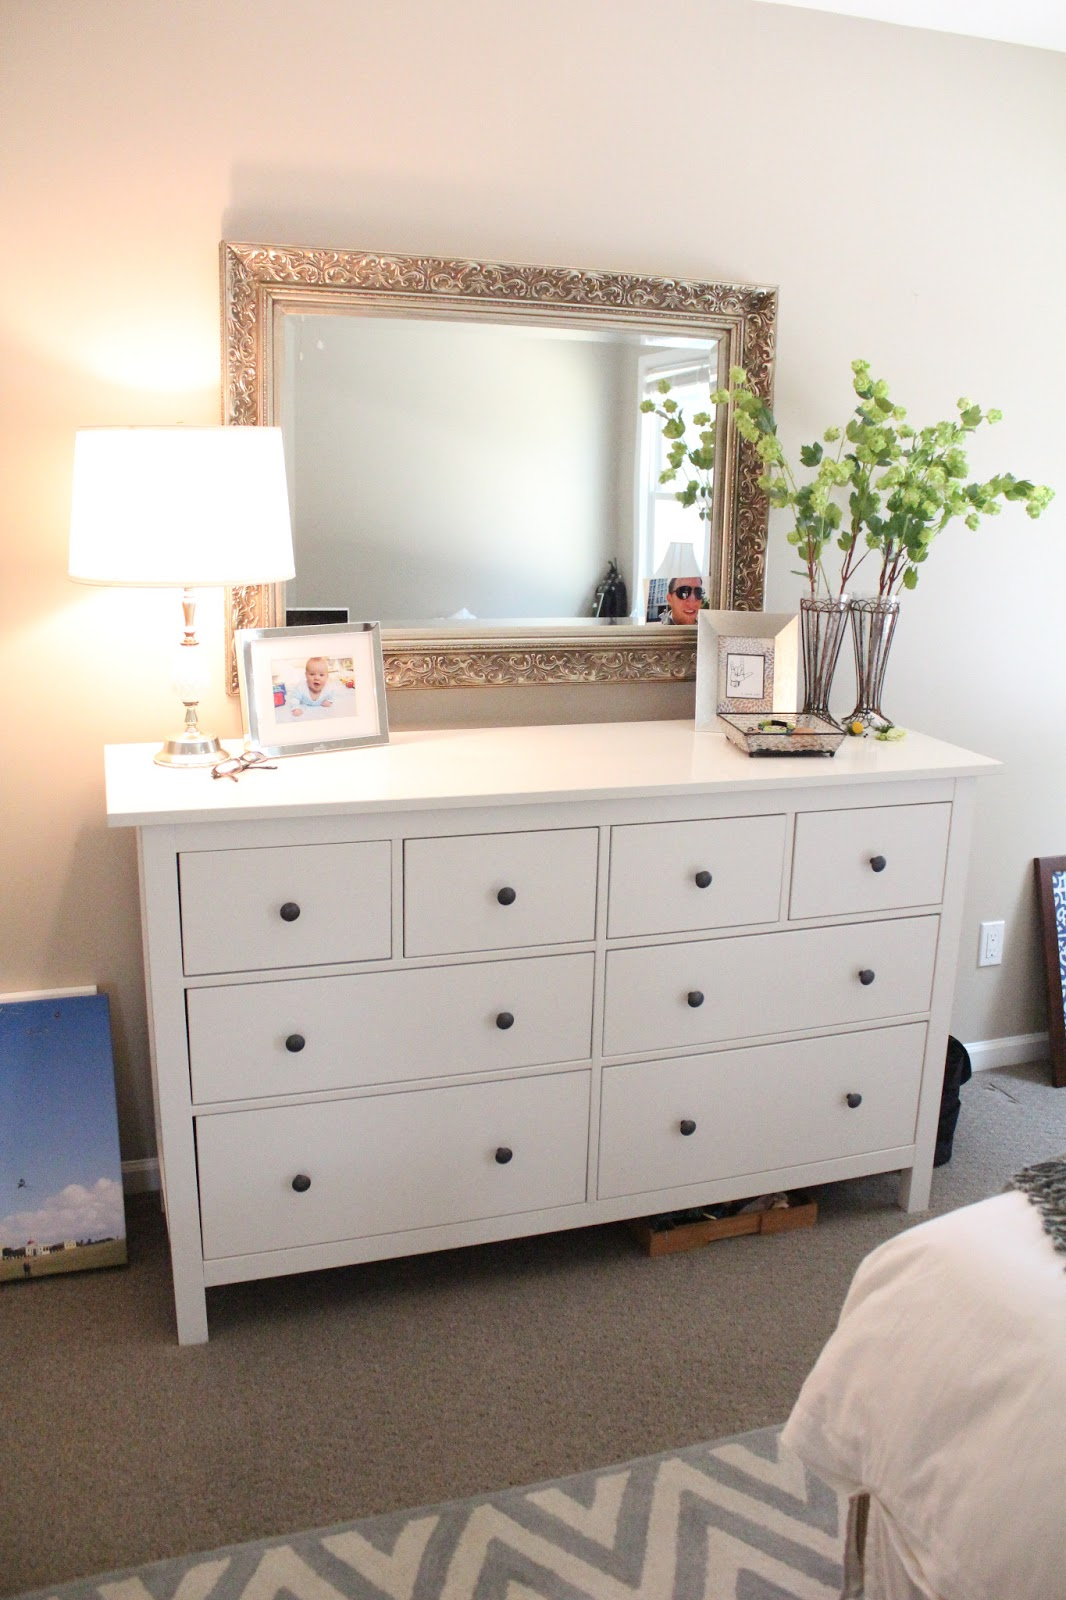 Ten june our rental house a master bedroom tour for Dresser ideas for small bedroom